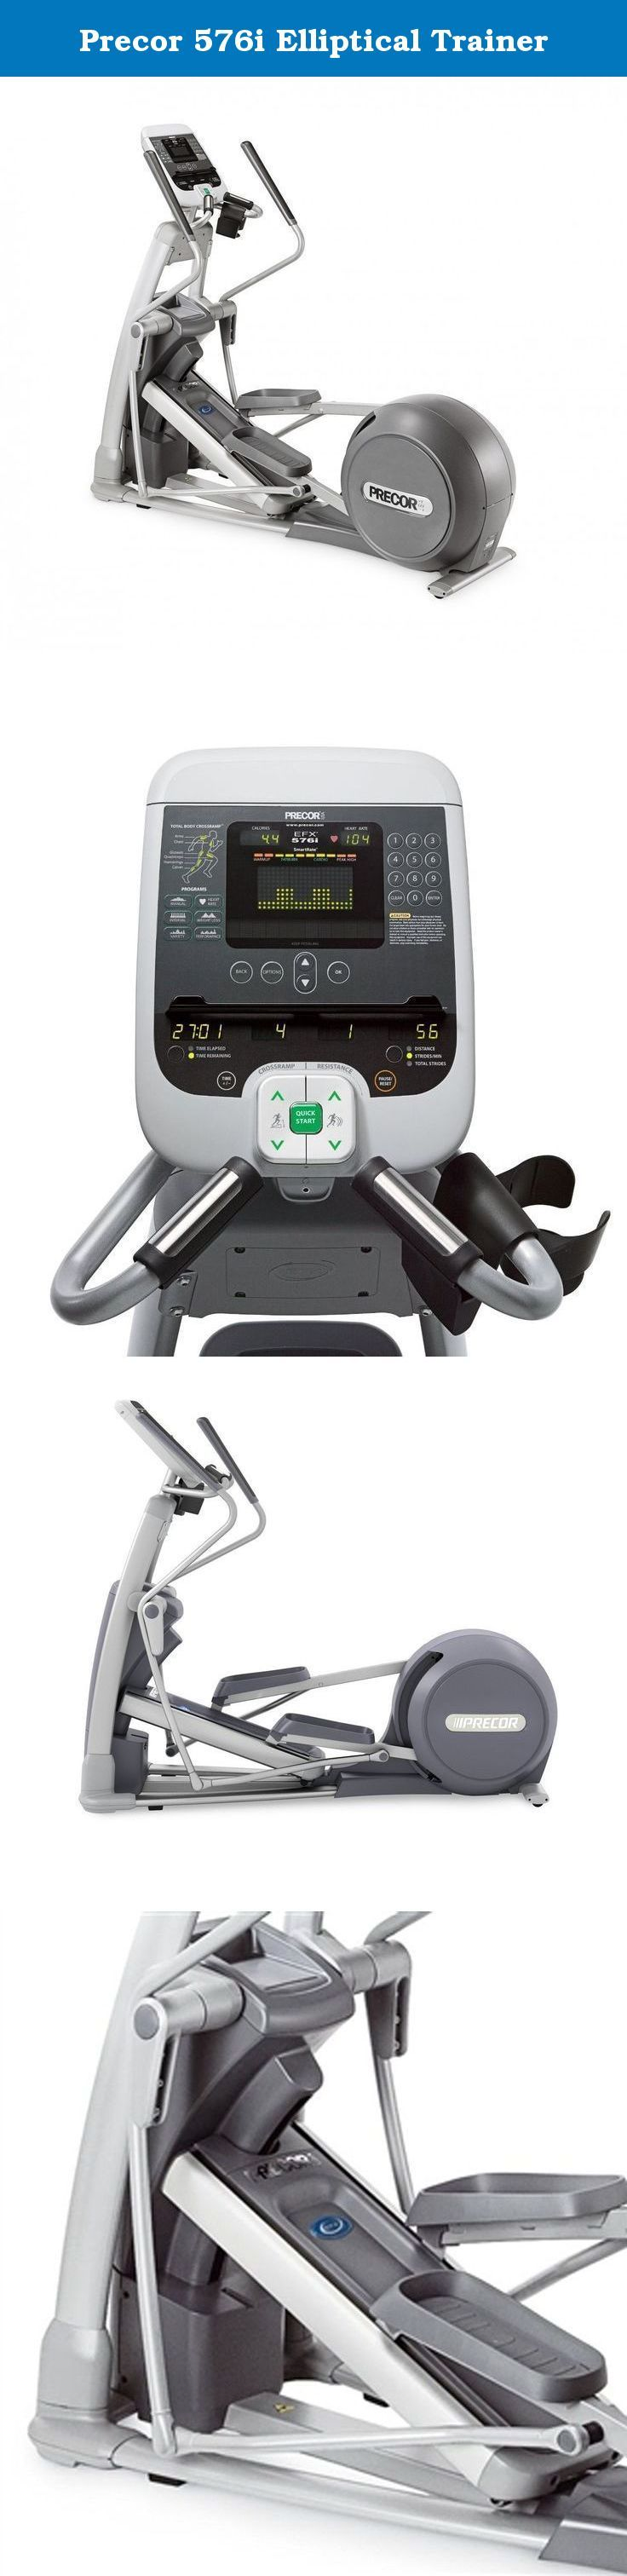 Precor 576i Elliptical Trainer. With a smooth, fluid motion that mirrors the movement of the body, the Precor EFX576i Experience elliptical fitness cross trainer provides an outstanding workout experience with a natural, elliptical movement. Designed for ease-of-use with intuitive displays that help you get on and get going, the 576i features an adjustable Cross Ramp that allows you to change incline and target specific muscle groups in both the upper and lower body. The Precor EFX 576i...